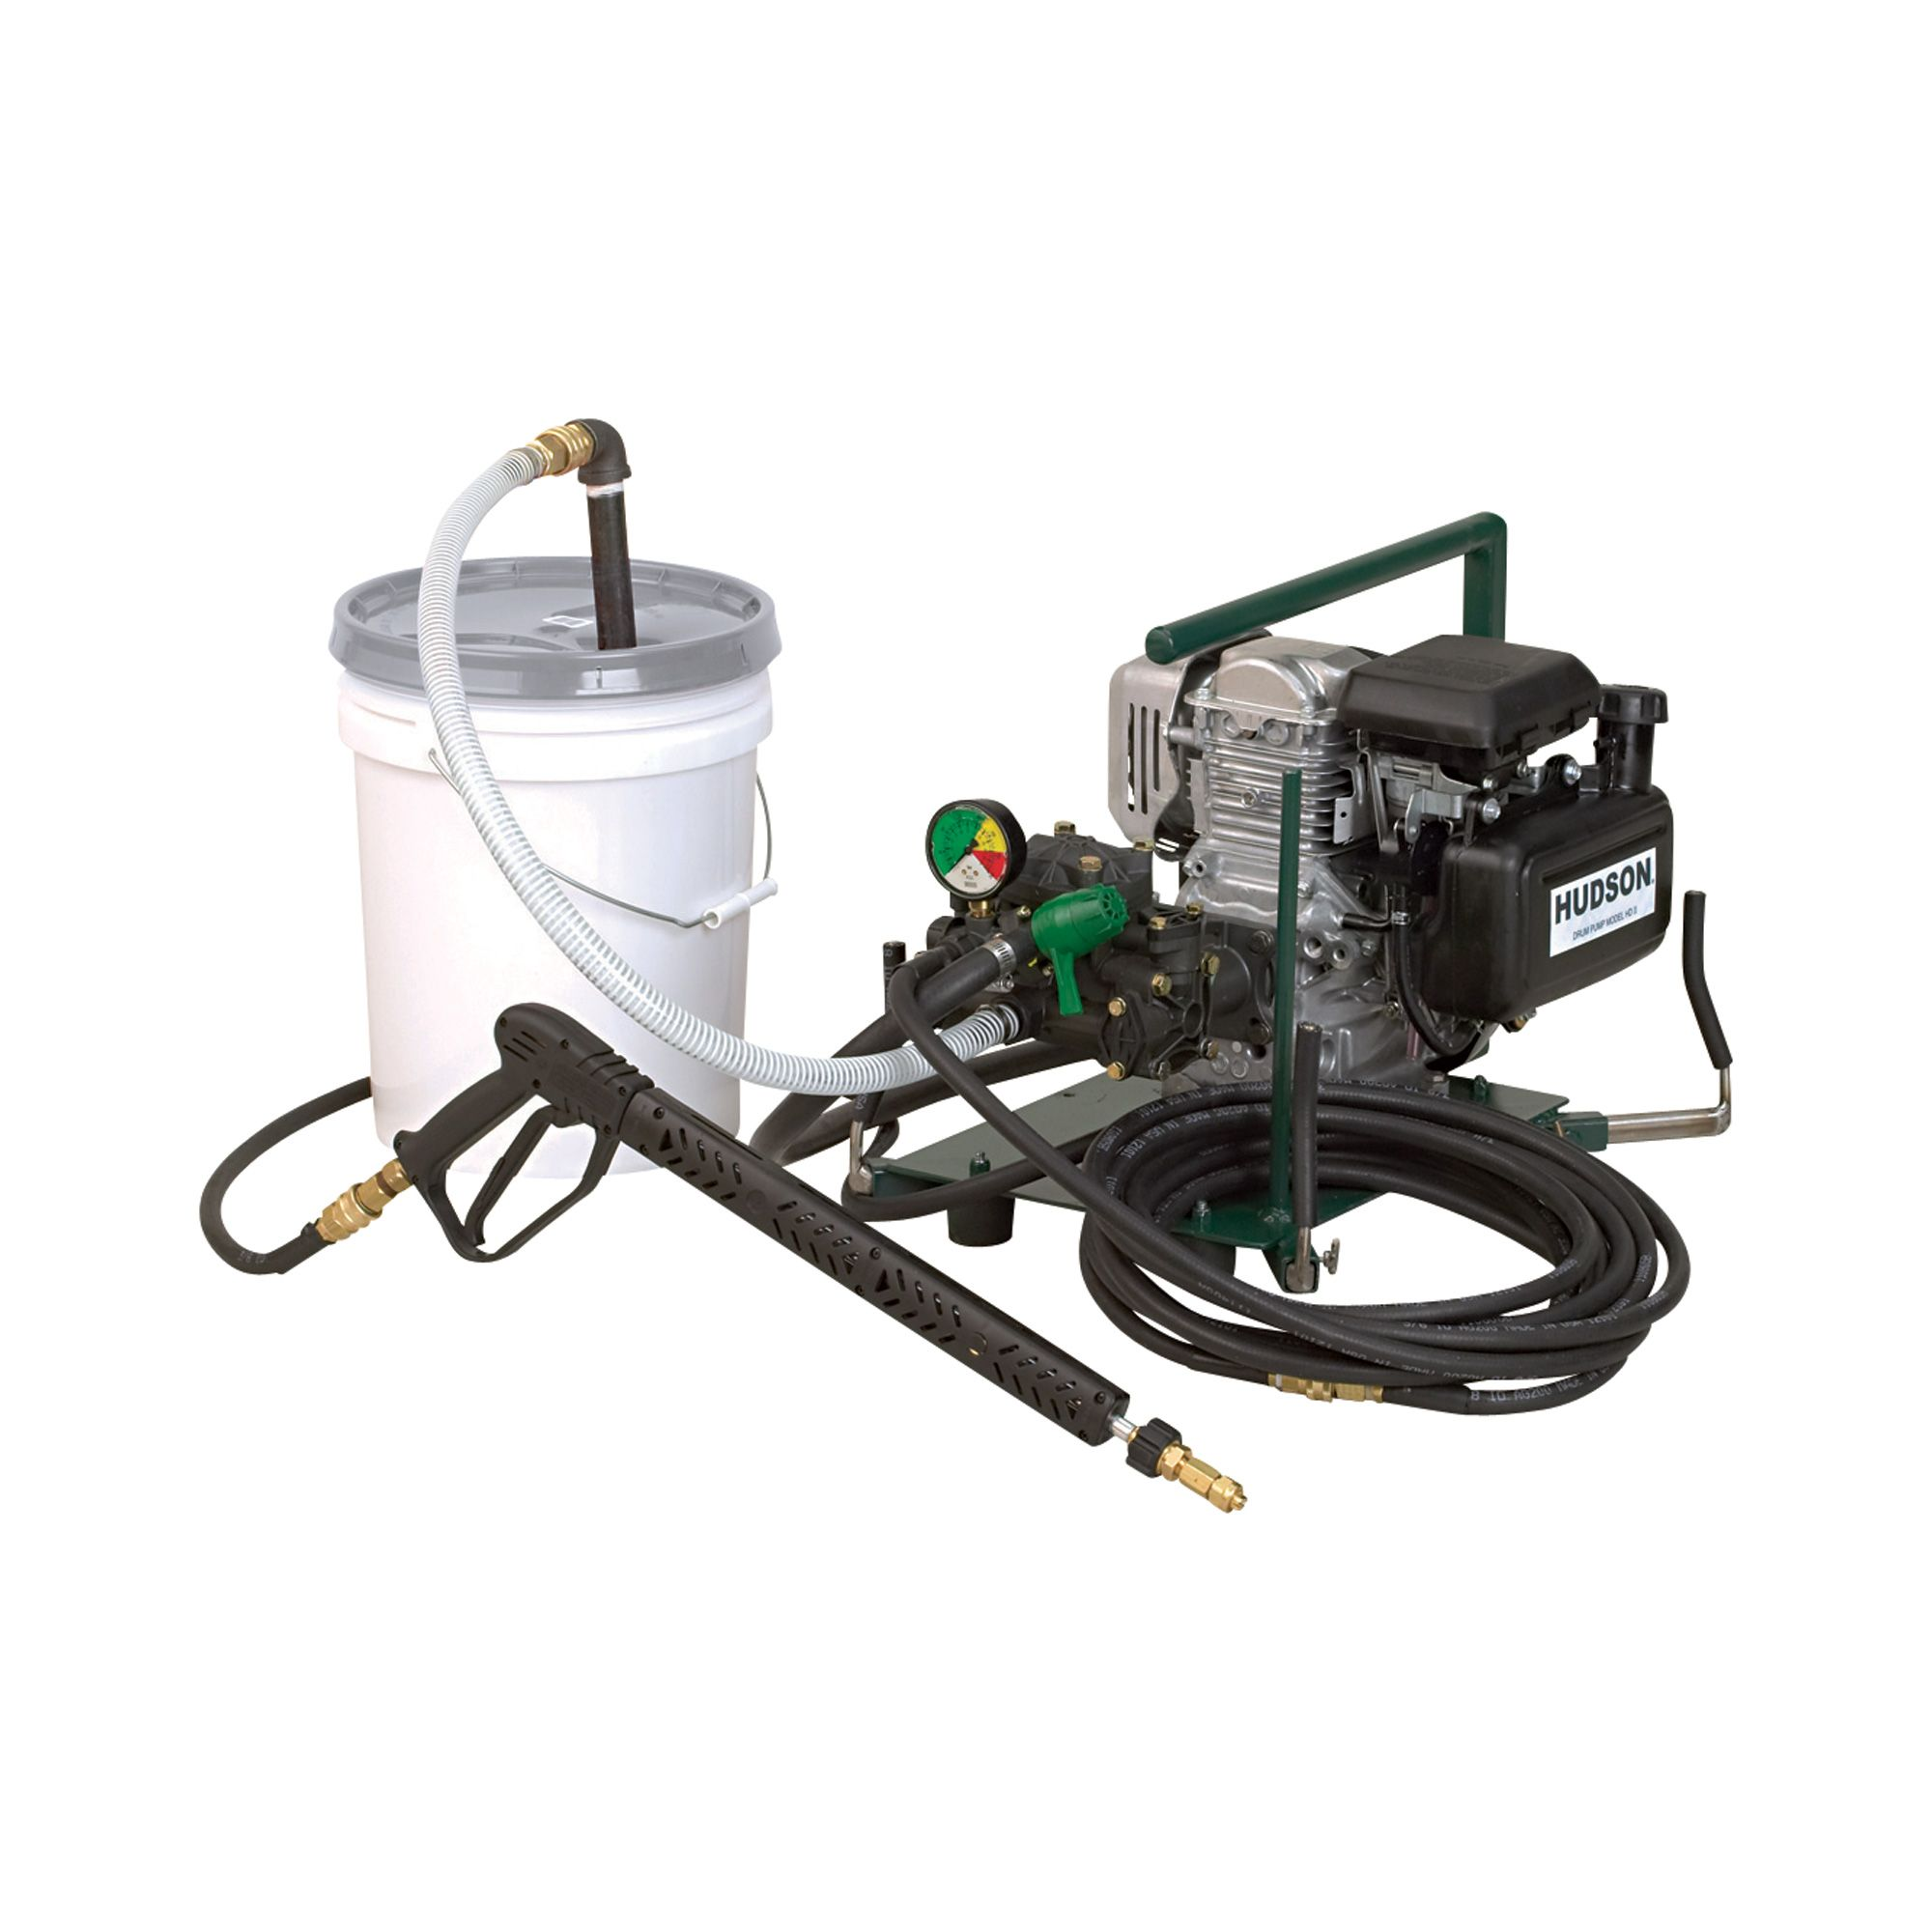 Hudson Commercial Drum Pump Sprayer 5 Hp 3 5 Gpm Model 38470 Portable Sprayers Made In The Usa Sprayers 55 Gallon Drum Gpm